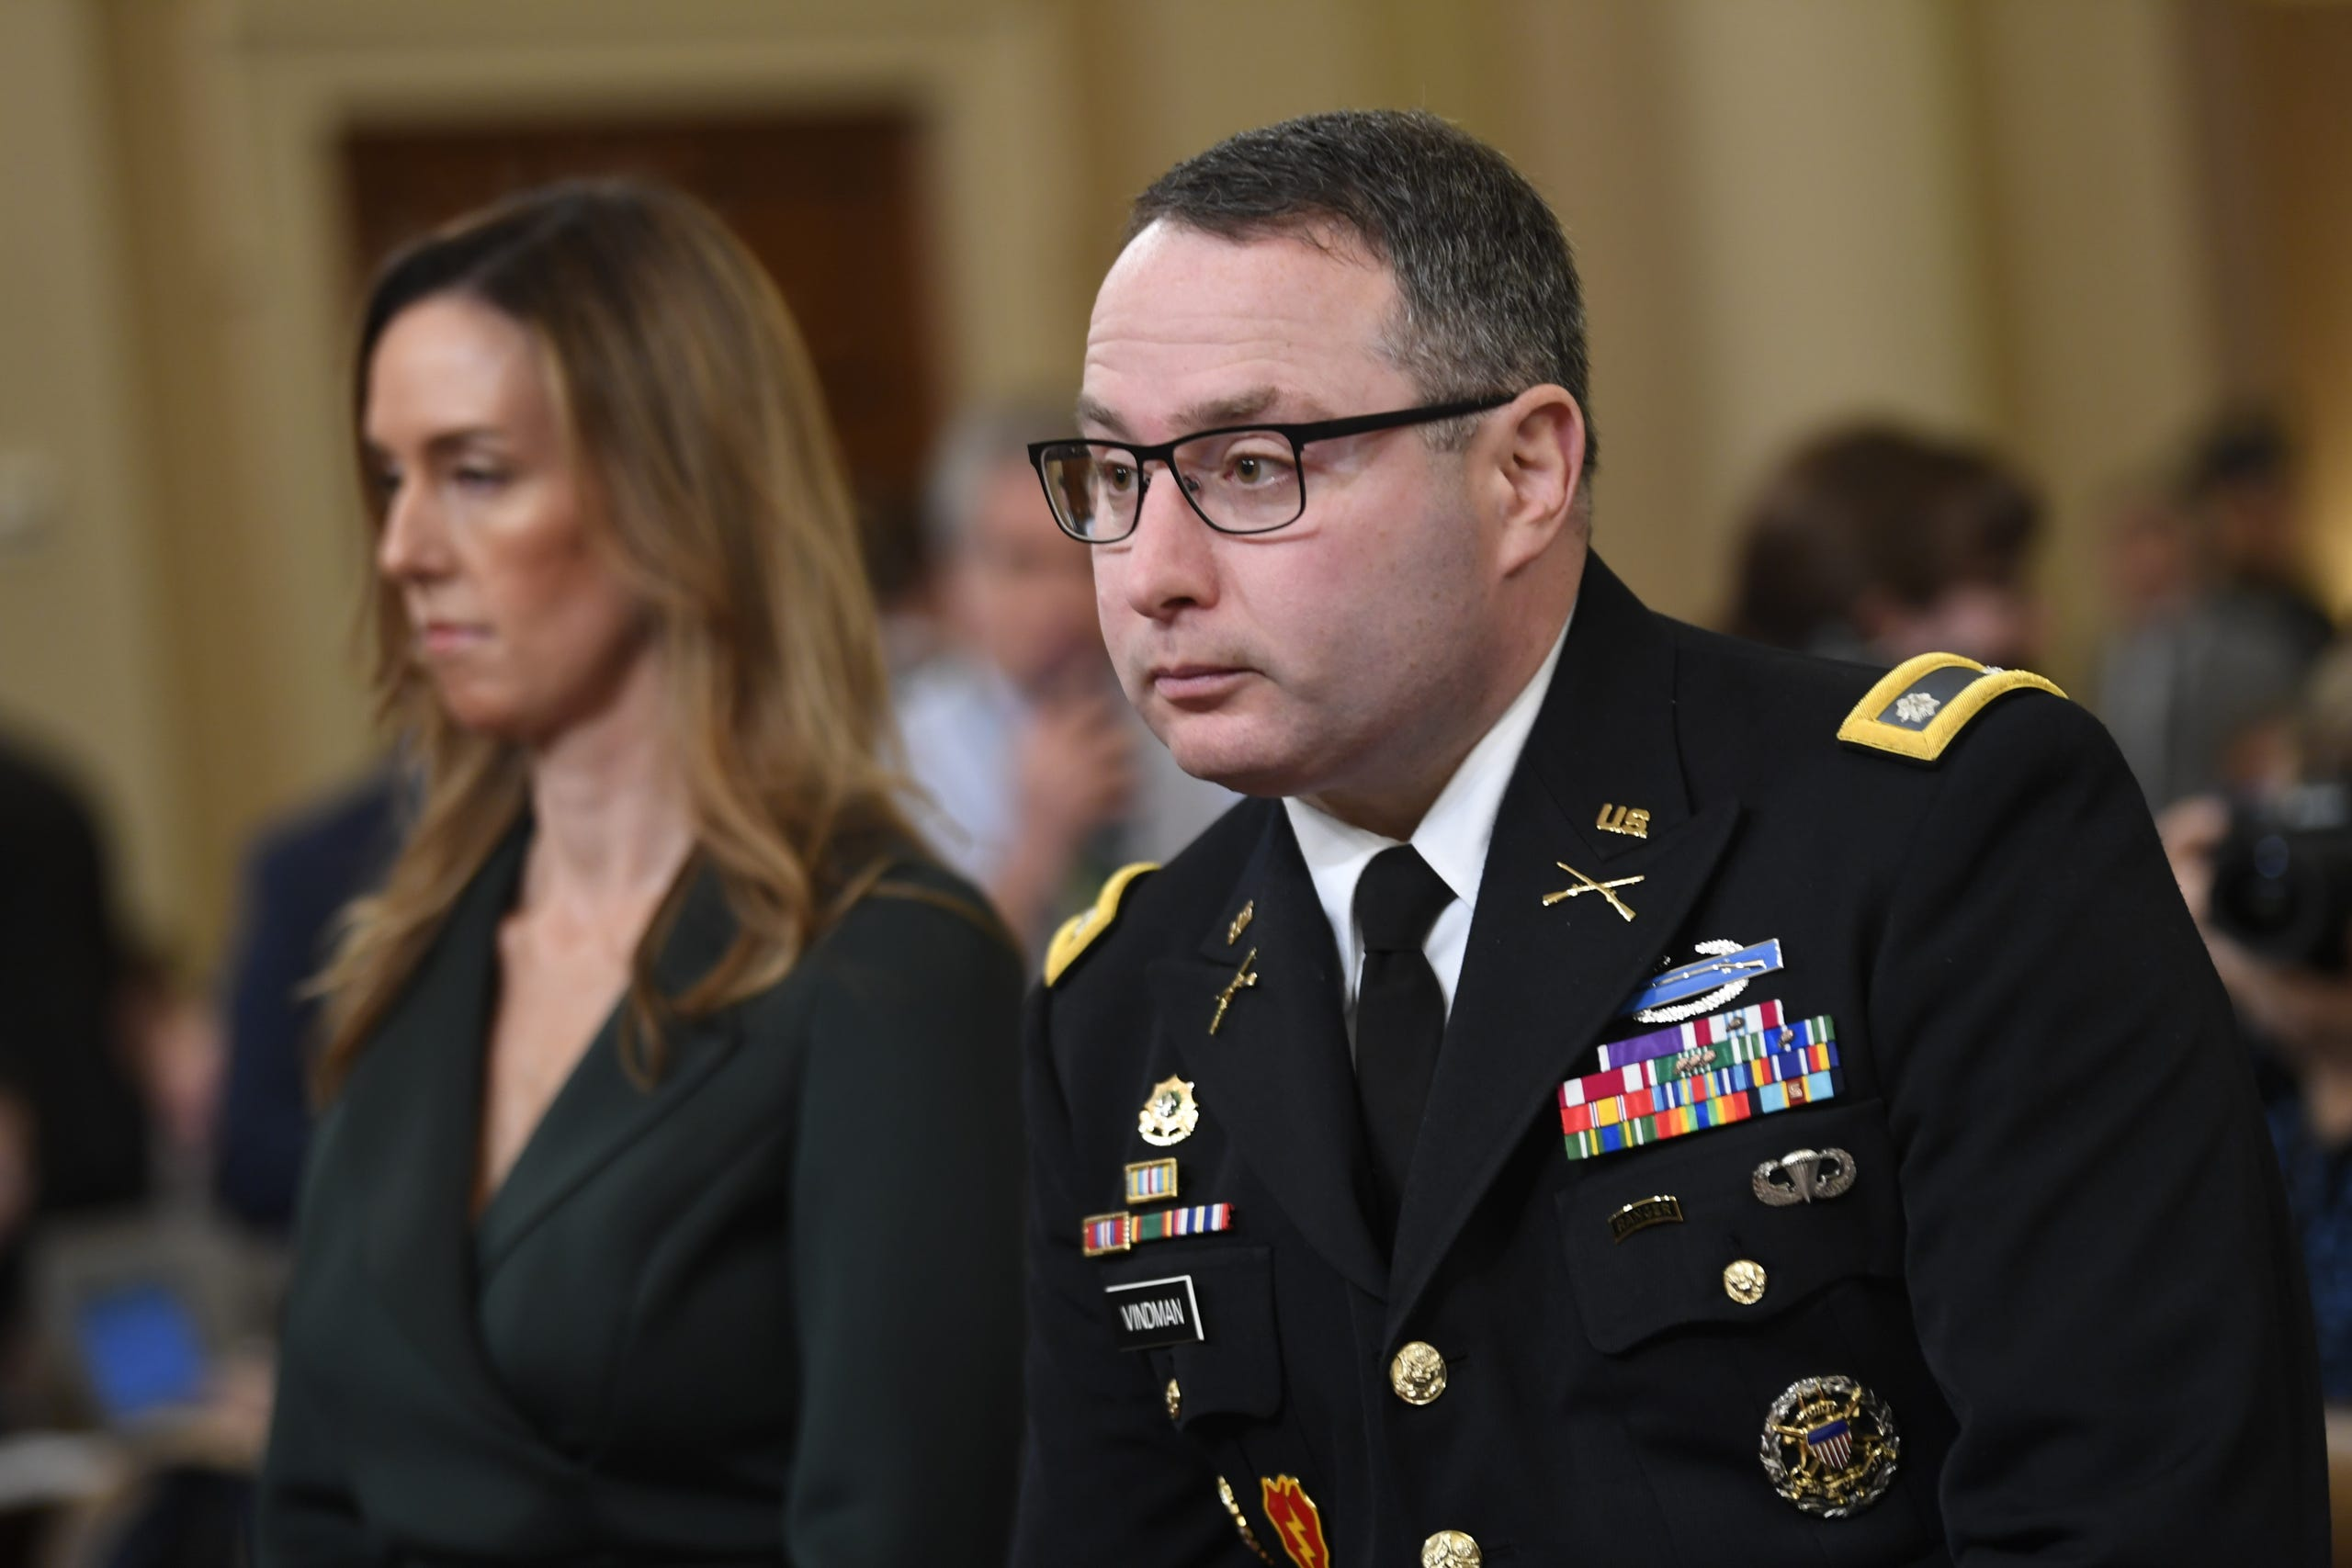 Lt. Col. Alexander Vindman was removed from his position as a National Security Council official on Feb. 7, 2020. Vindman had testified against President Donald J. Trump during the initial stages of impeachment investigations.